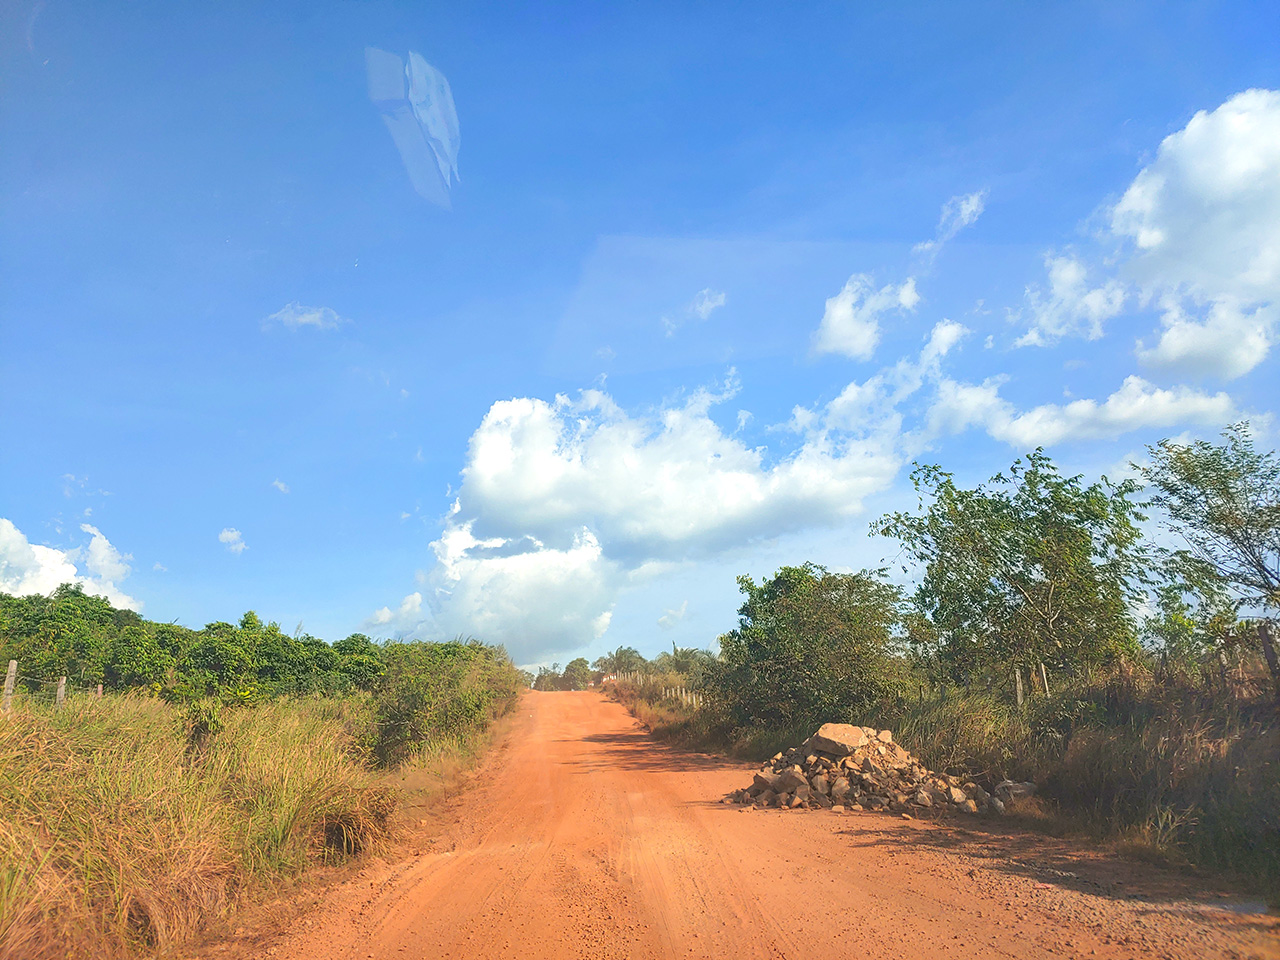 160 Hectares land for sale in Steung Chhay Commune